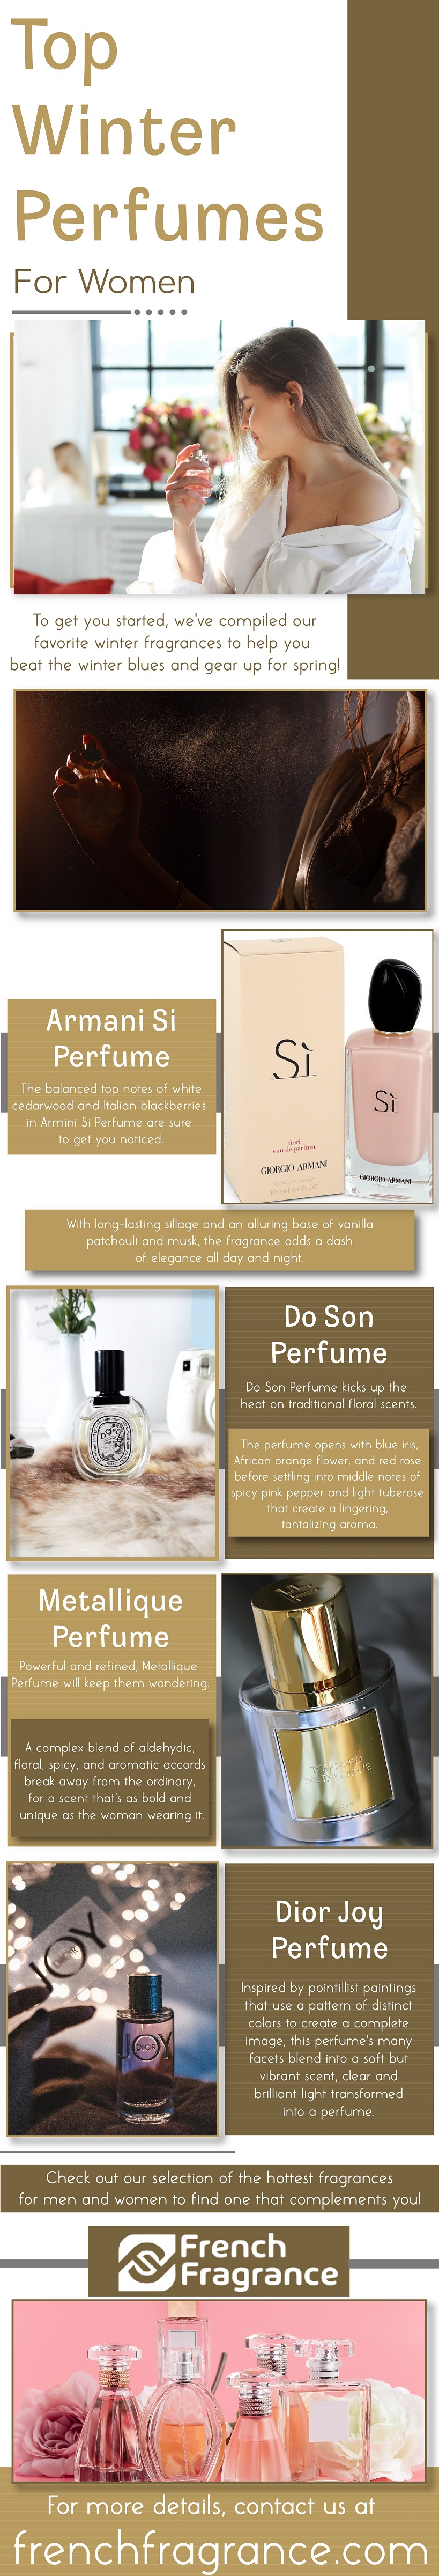 Top Winter Perfumes for Women